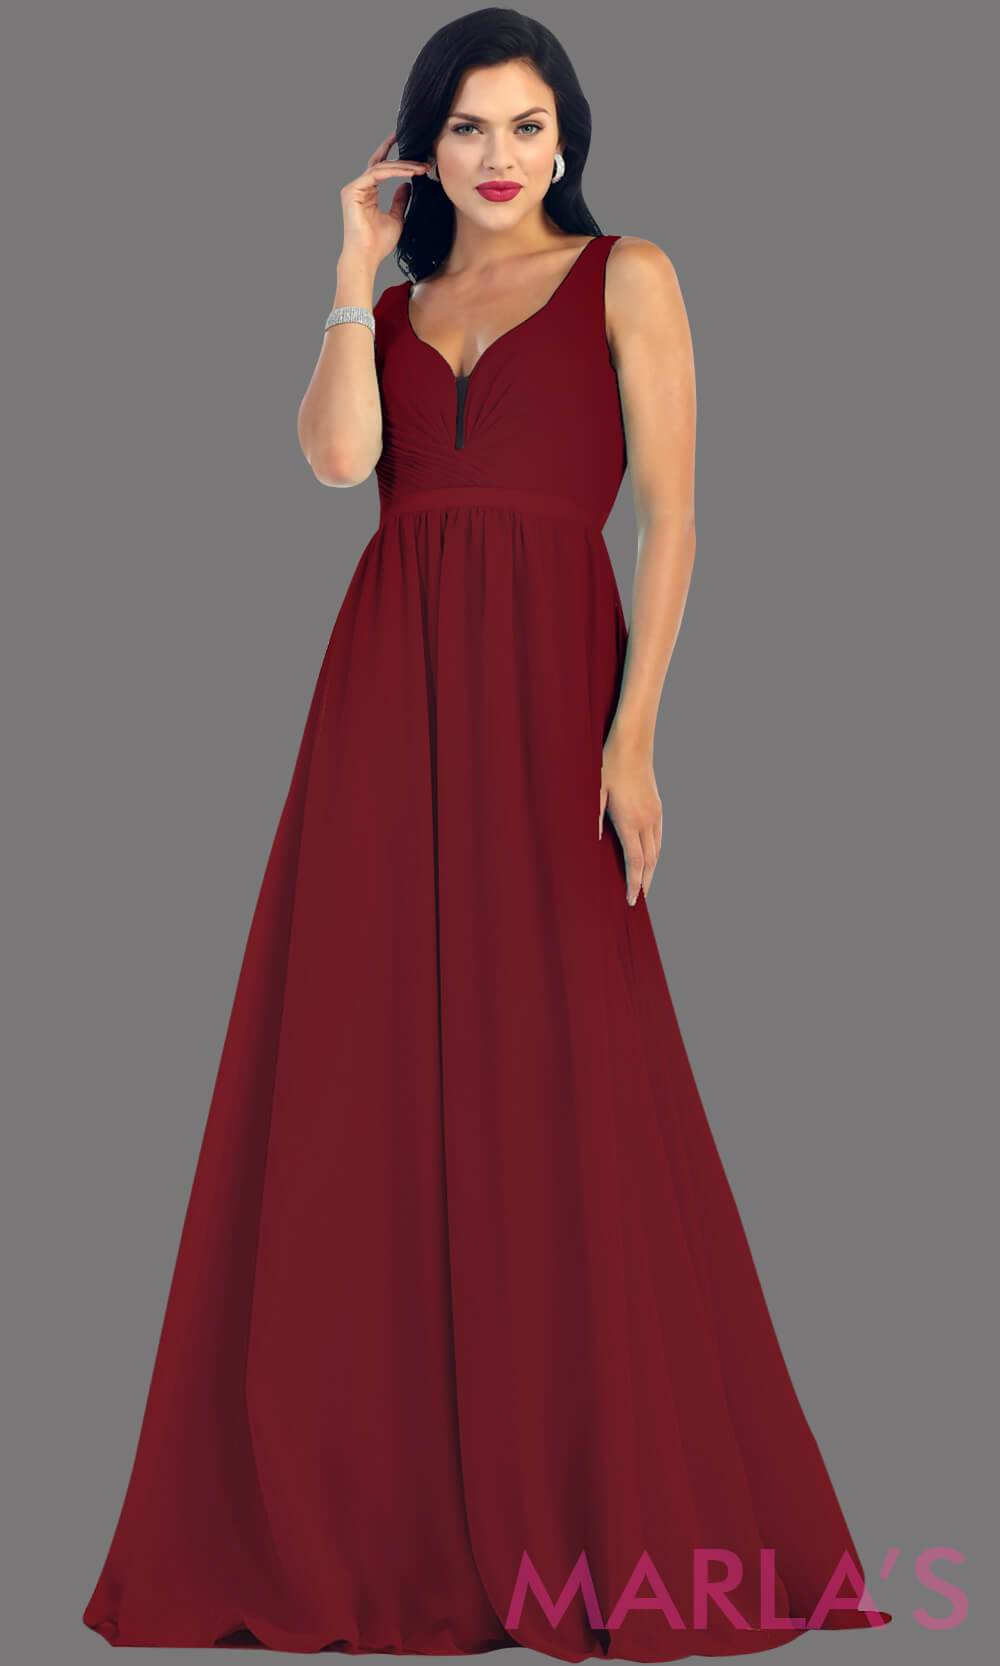 Long burgandy dress with wide straps and v neck dress. This simple evening gown is perfect for a wedding guest dress, simple dark red prom dress, or even a bridesmaid dress. This dress is available in plus size